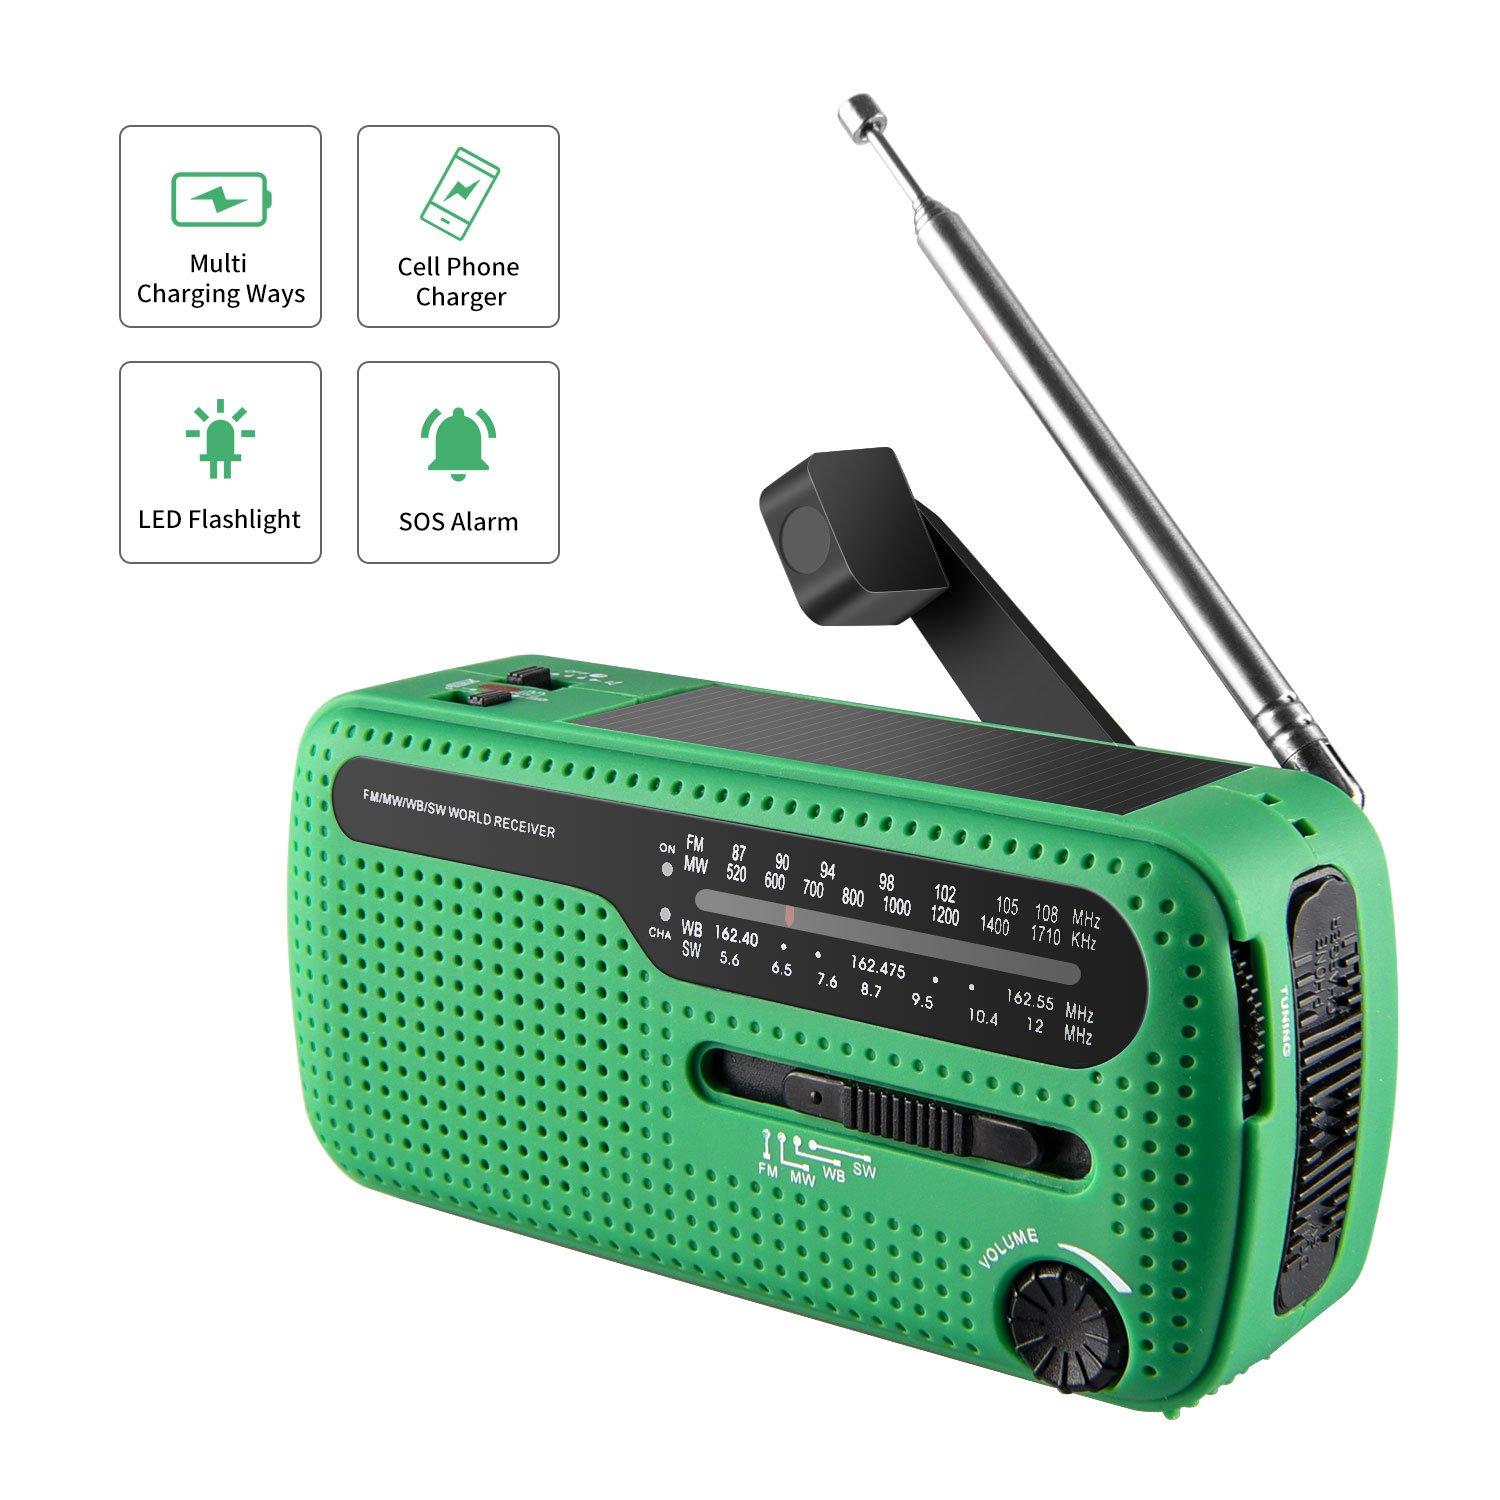 Weather Radio /& LED Light Rechargeable Batteries VIKUR Solar Hand Crank Emergency Radio and LED Flashlight Ideal for Emergencies and Outdoor Activities